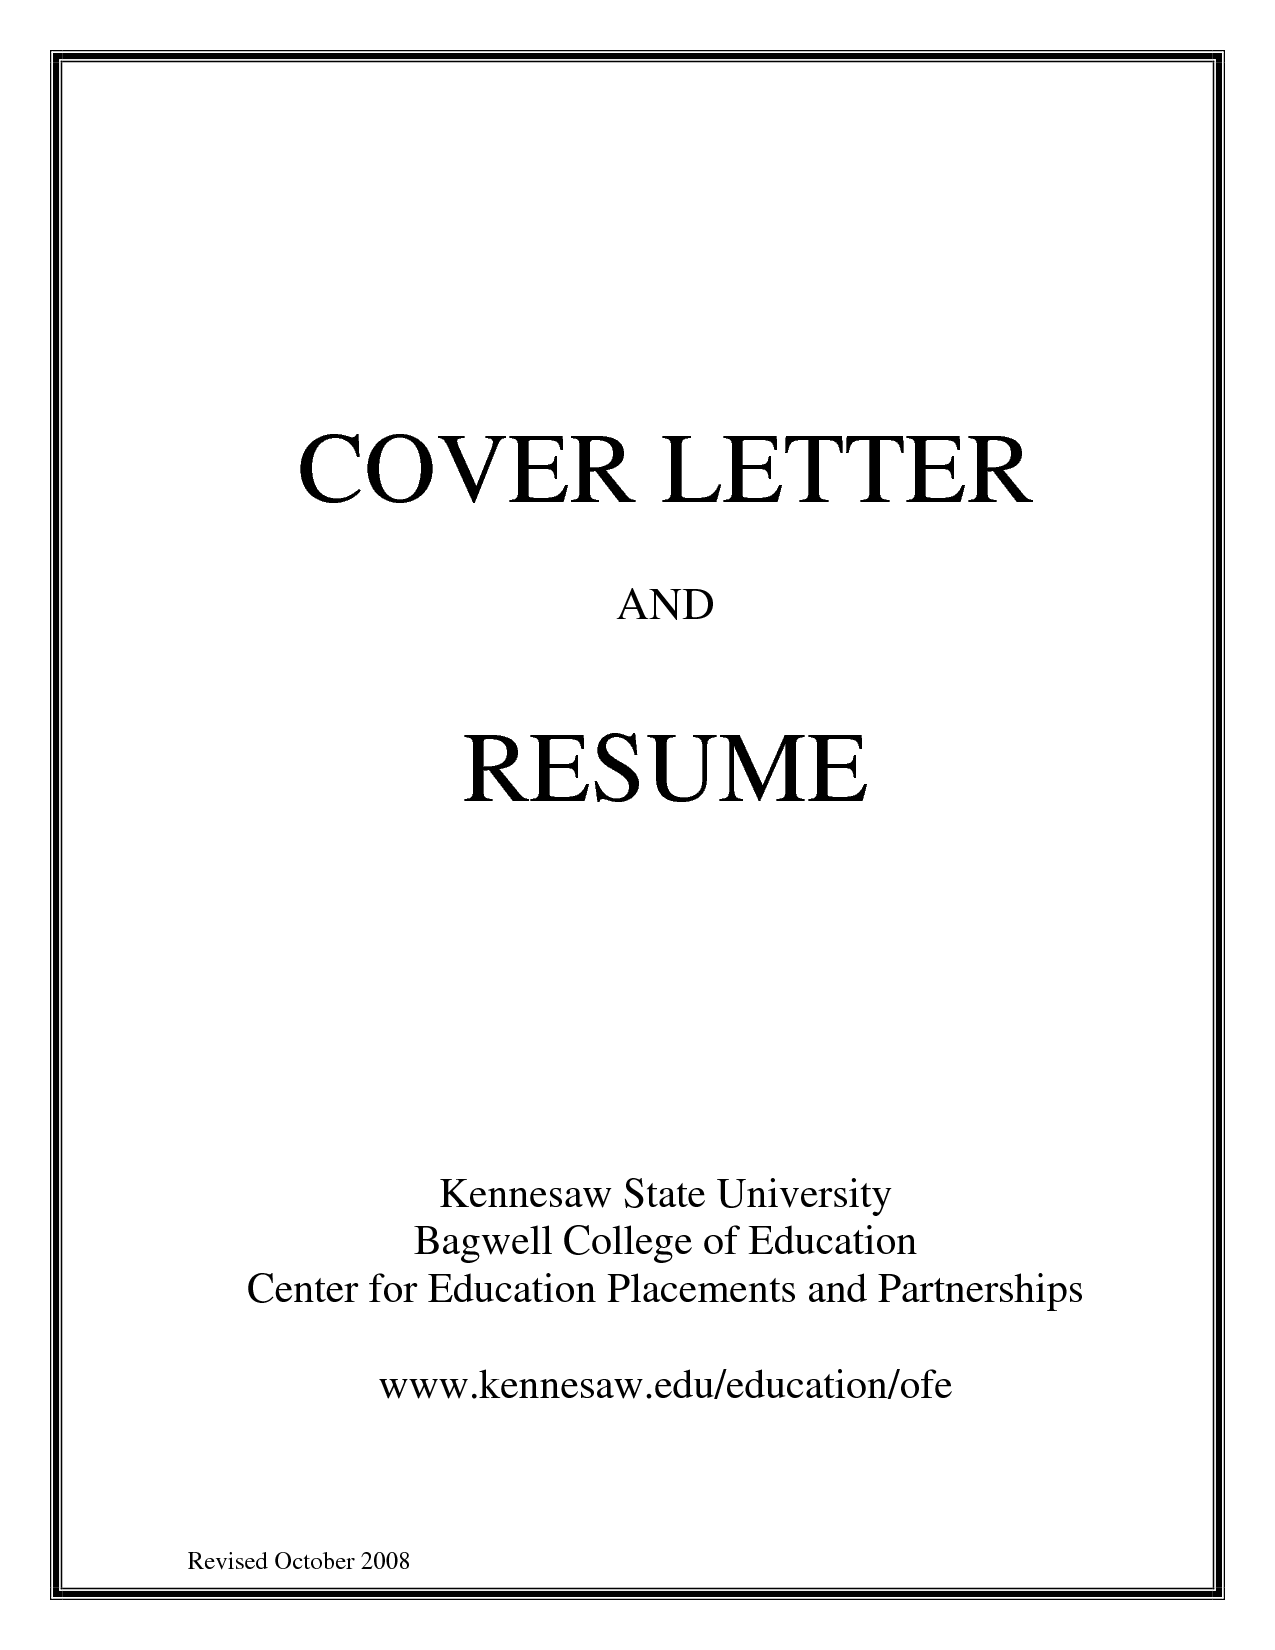 resume title page example - Resume Letter Cover Format